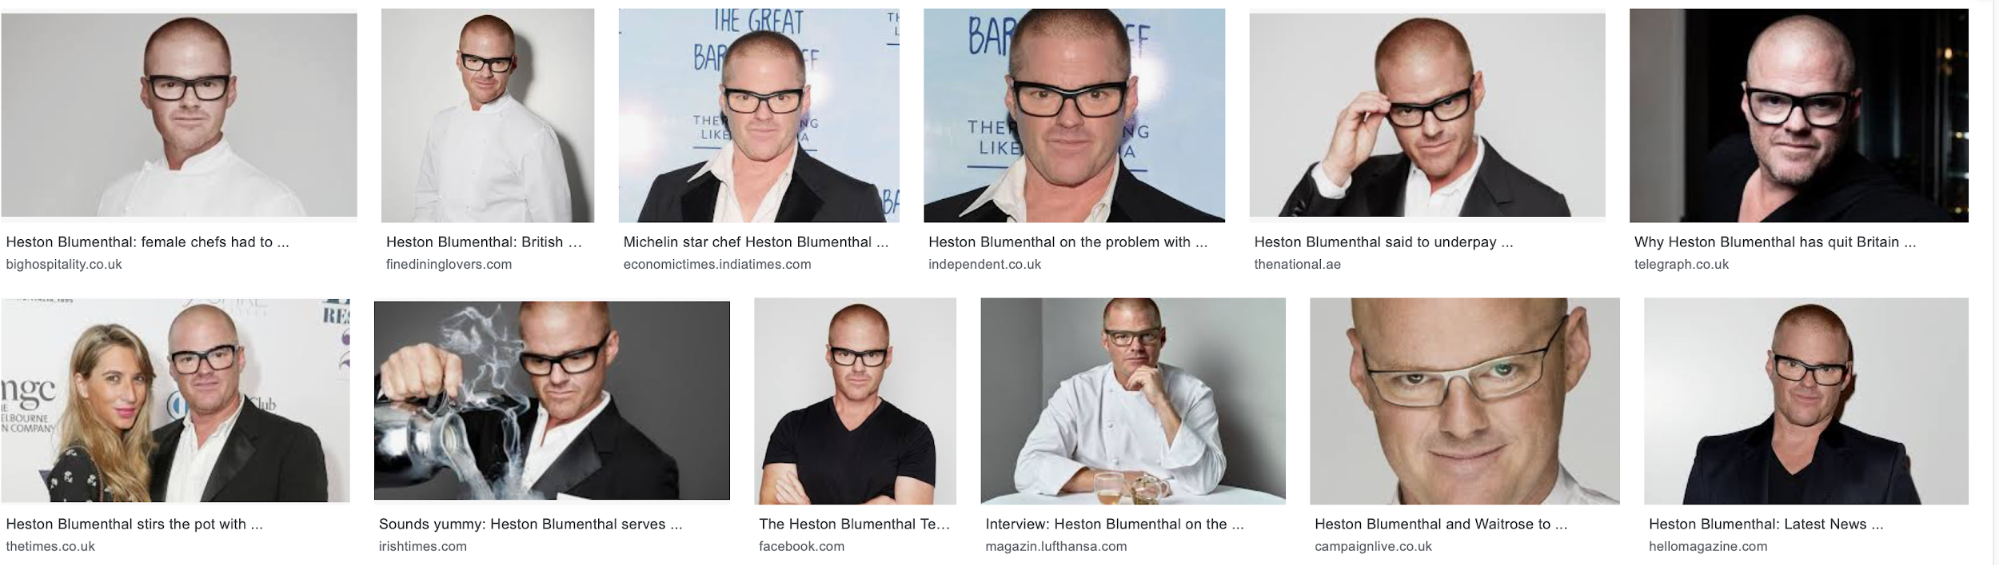 Google Image Search results for Heston Blumenthal